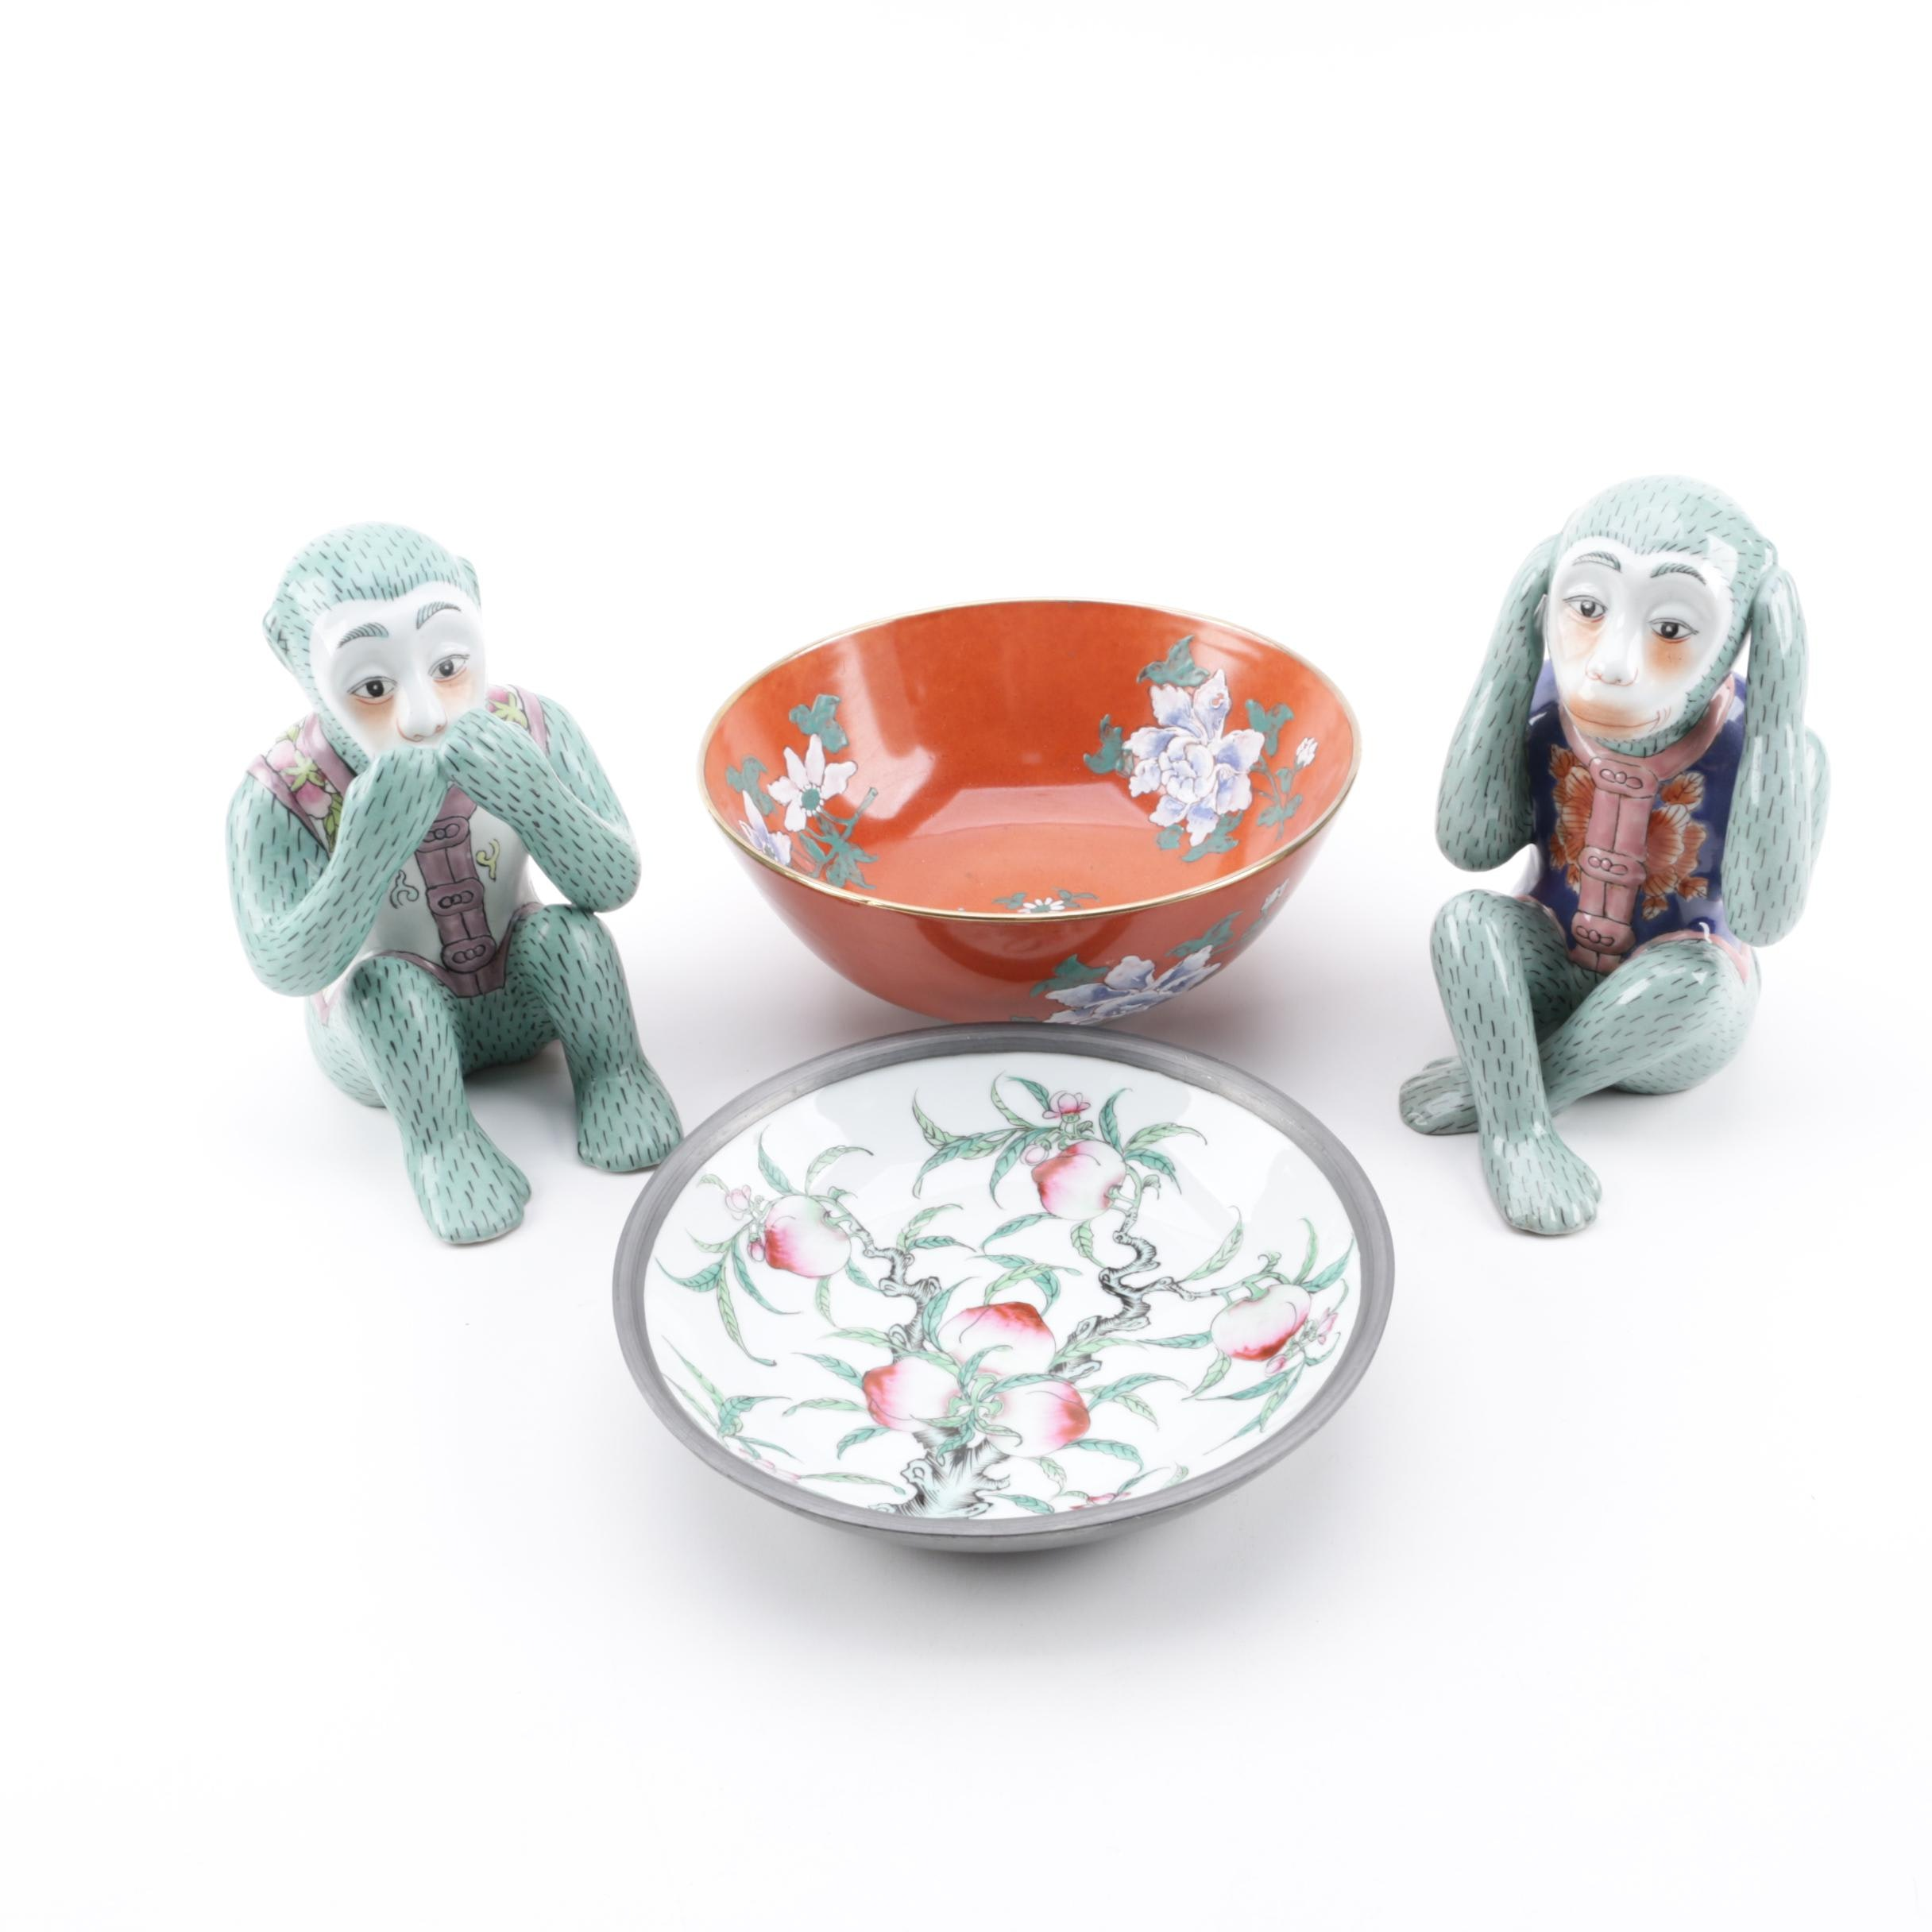 Andrea by Sadek Wise Monkey Figurines with Japanese Porcelain Bowls